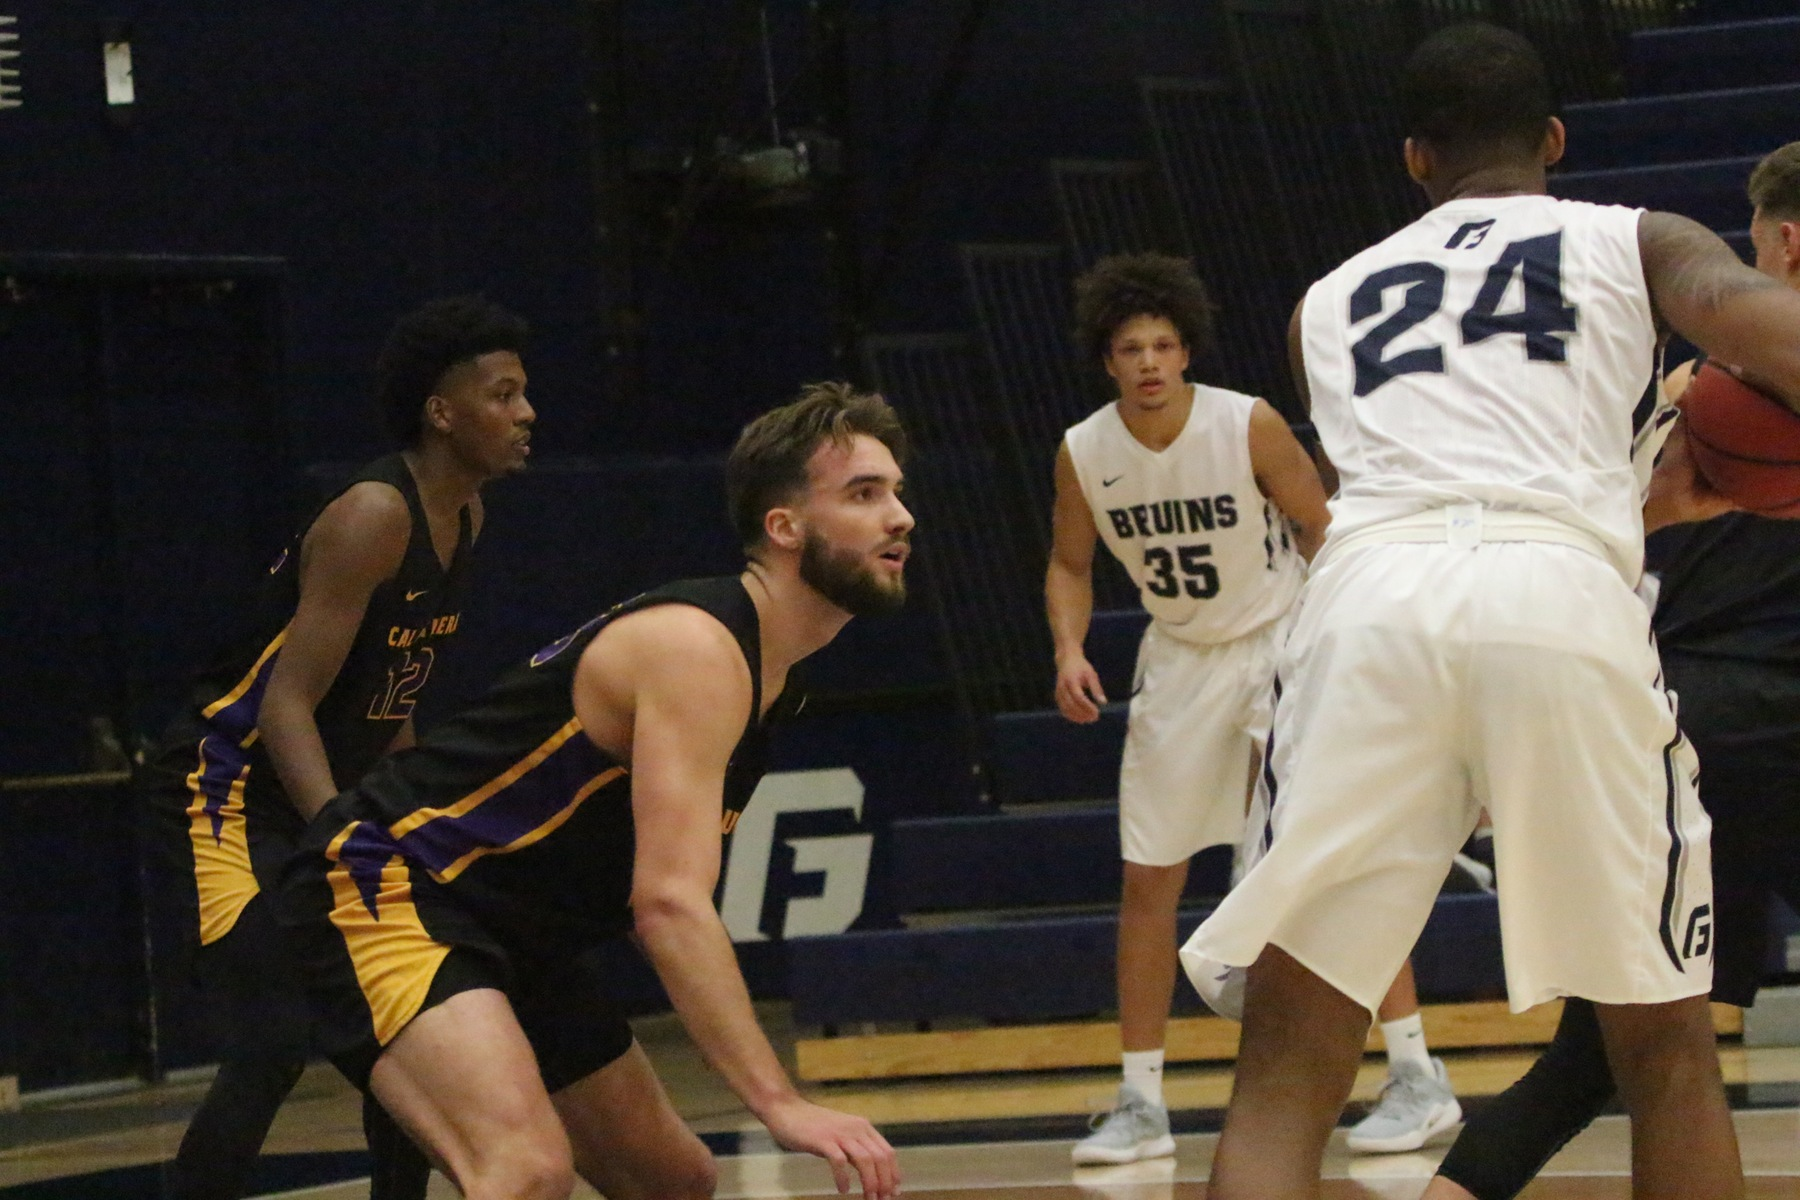 Ferreira Scores 23, Wadsworth Adds 18 as Kingsmen Take Down Bruins